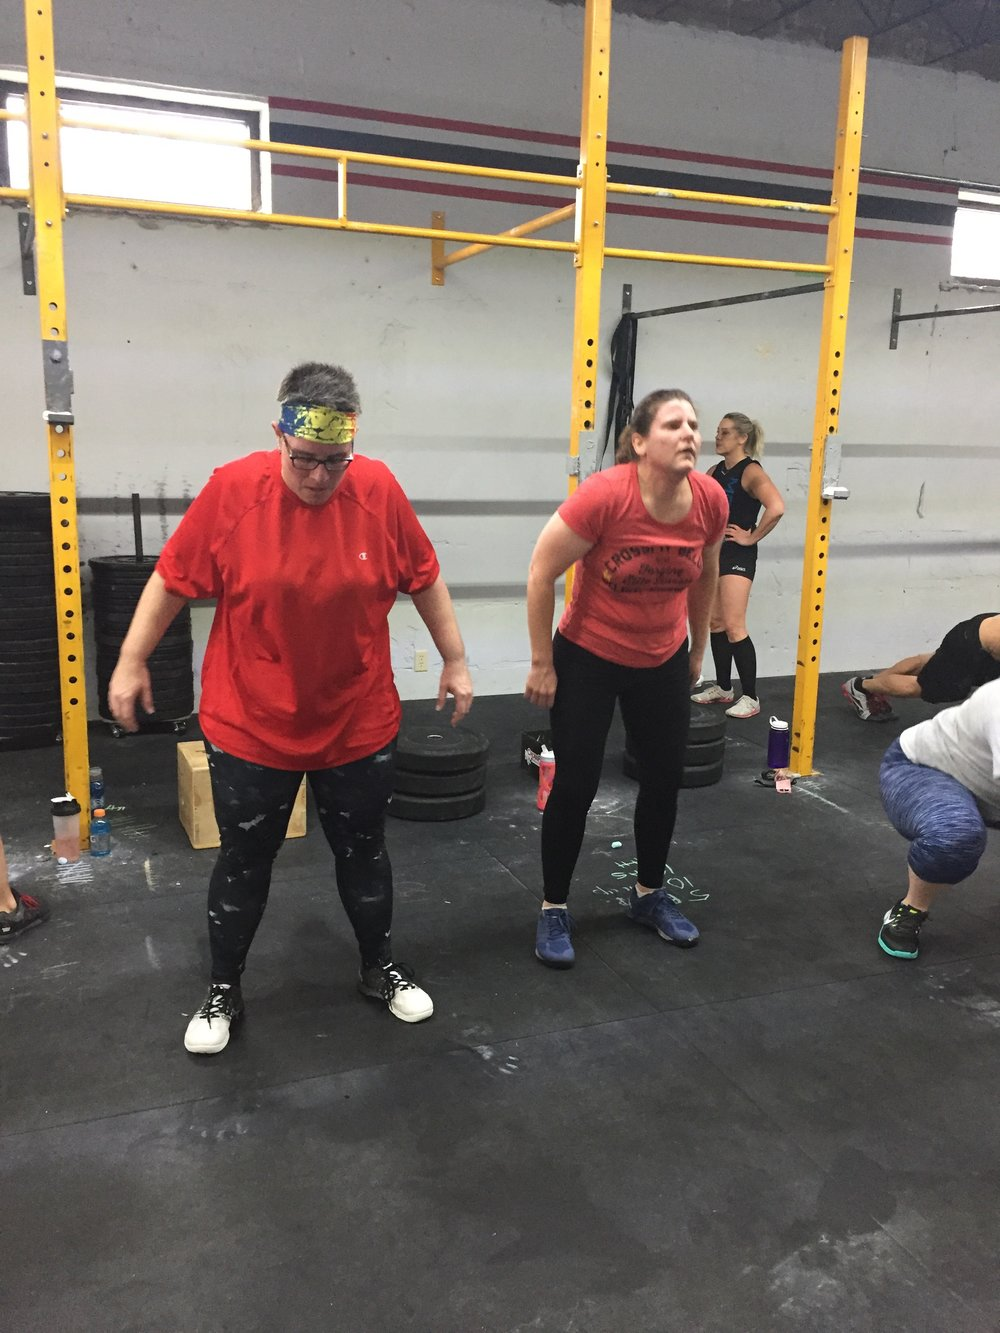 Couples who WOD together...Tina and Joanne crushing their Cindy retest.